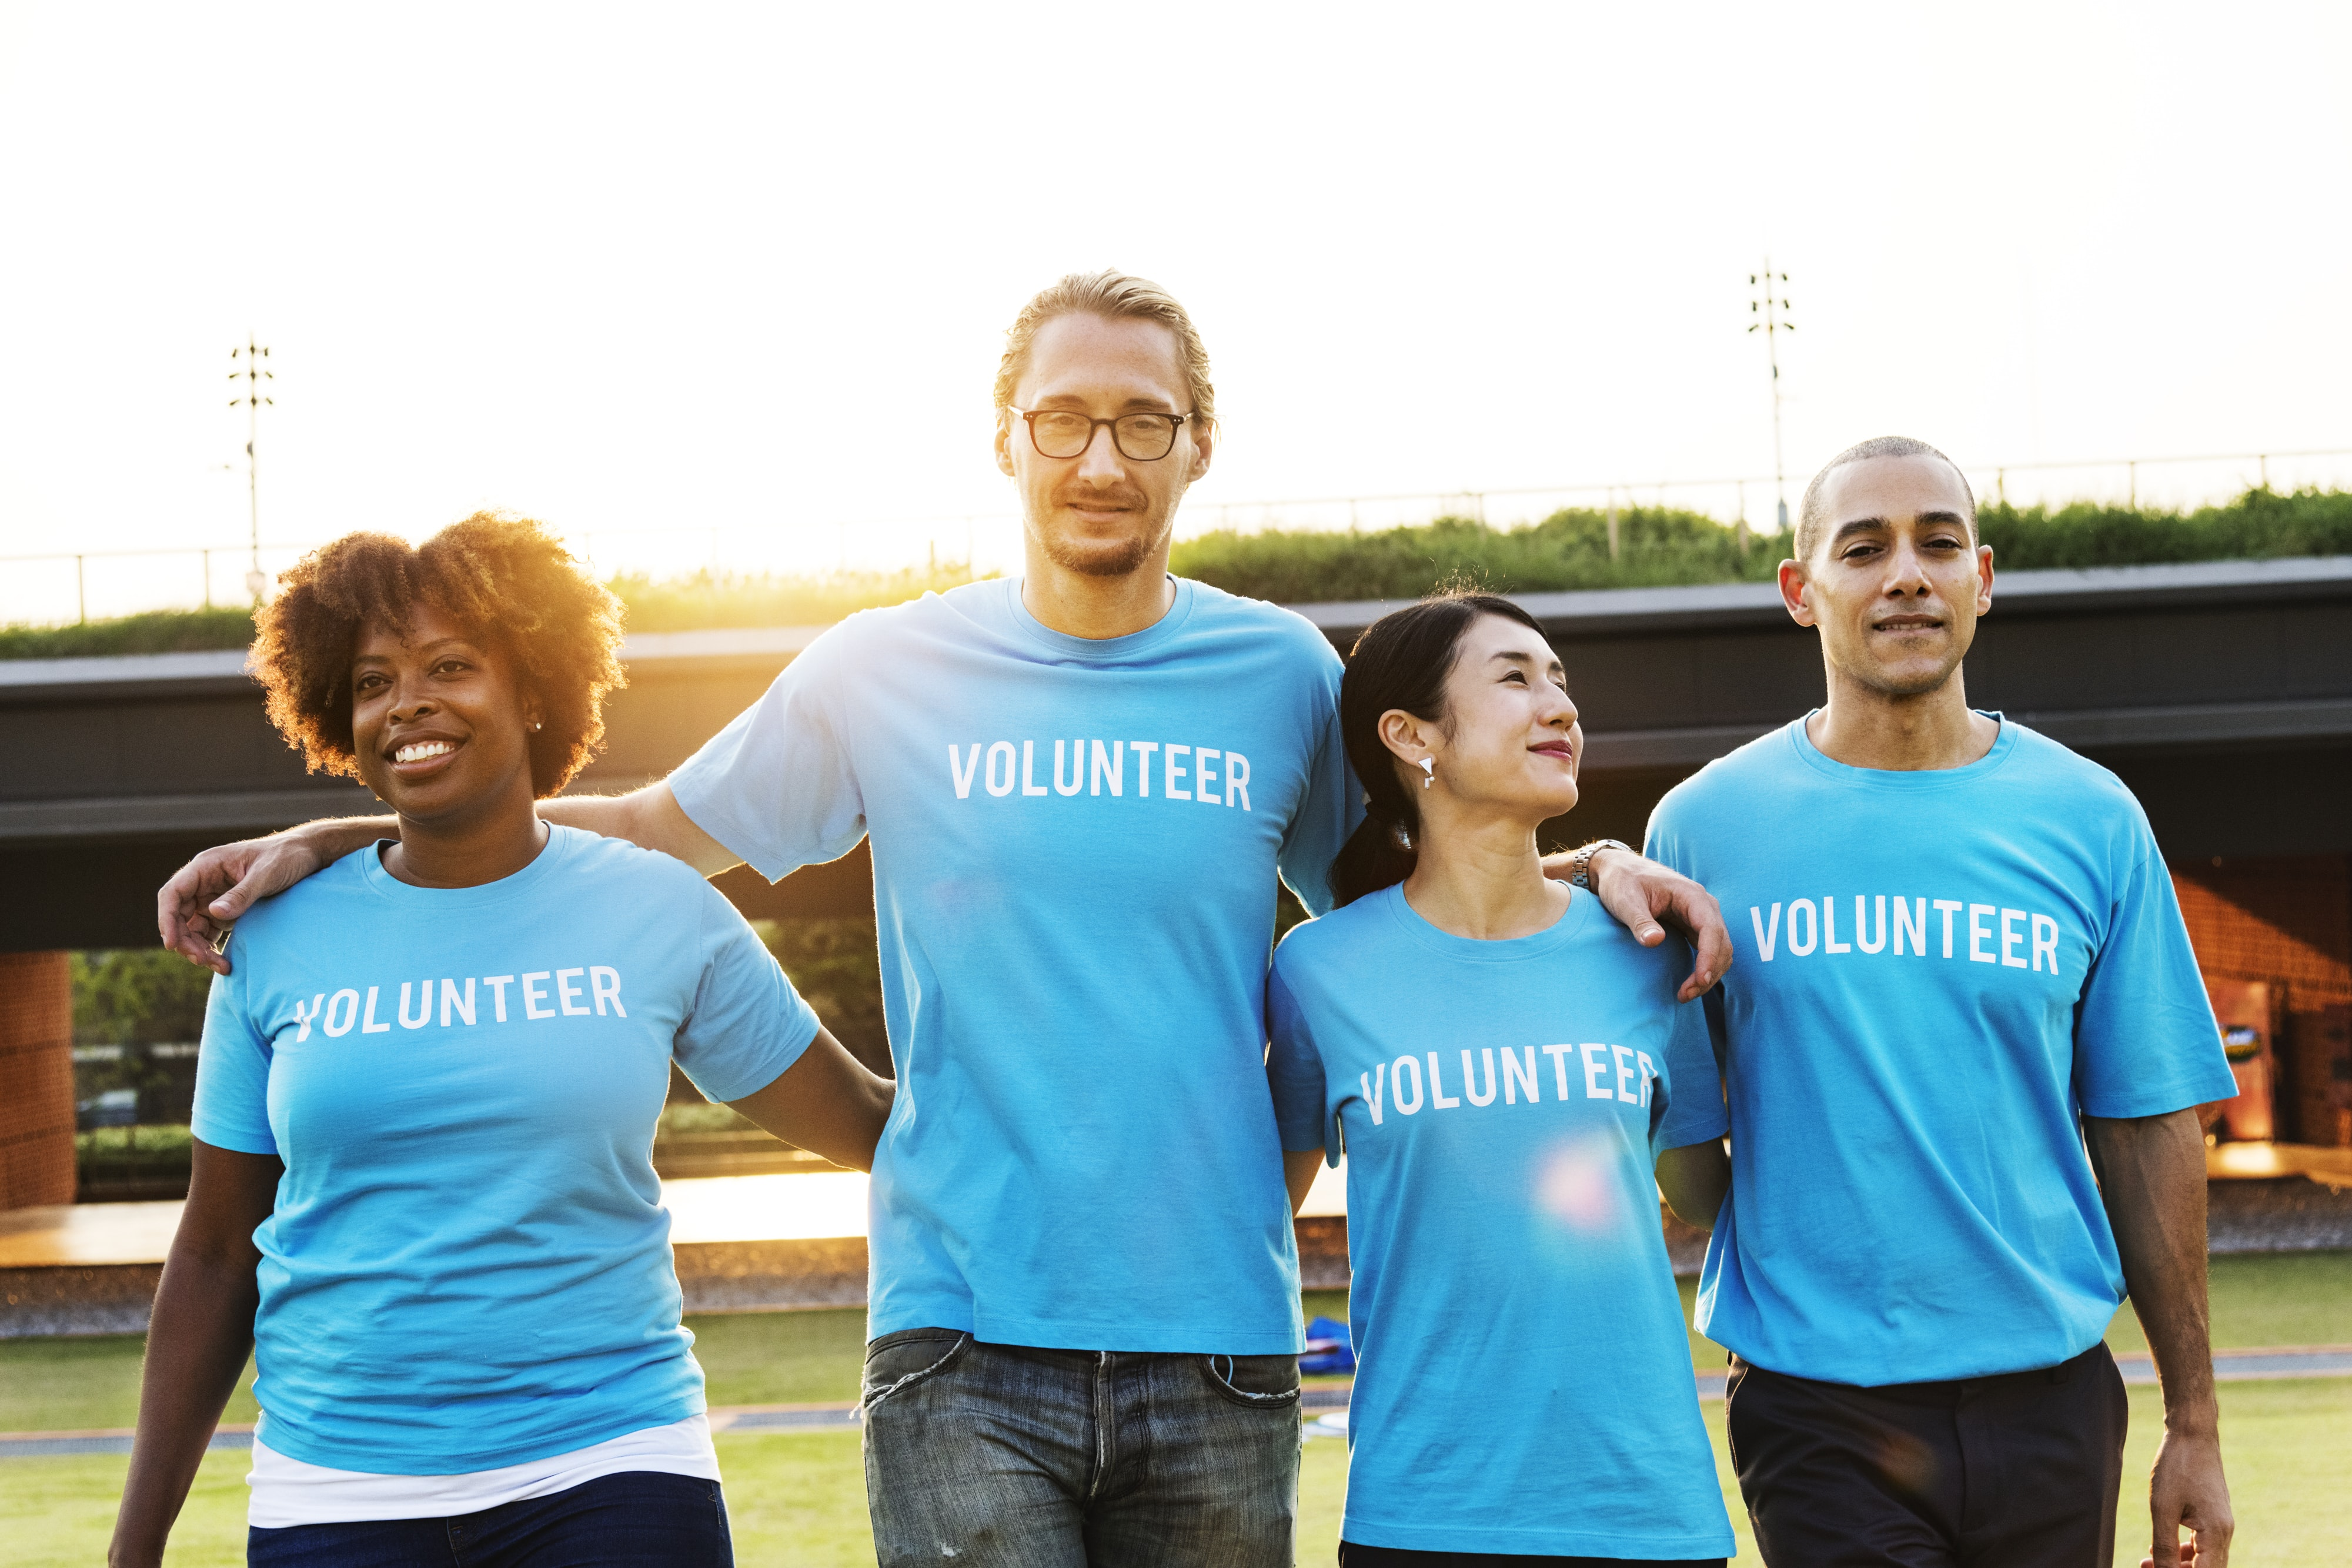 two men and women wearing blue volunteer-printed crew-neck t-shirts